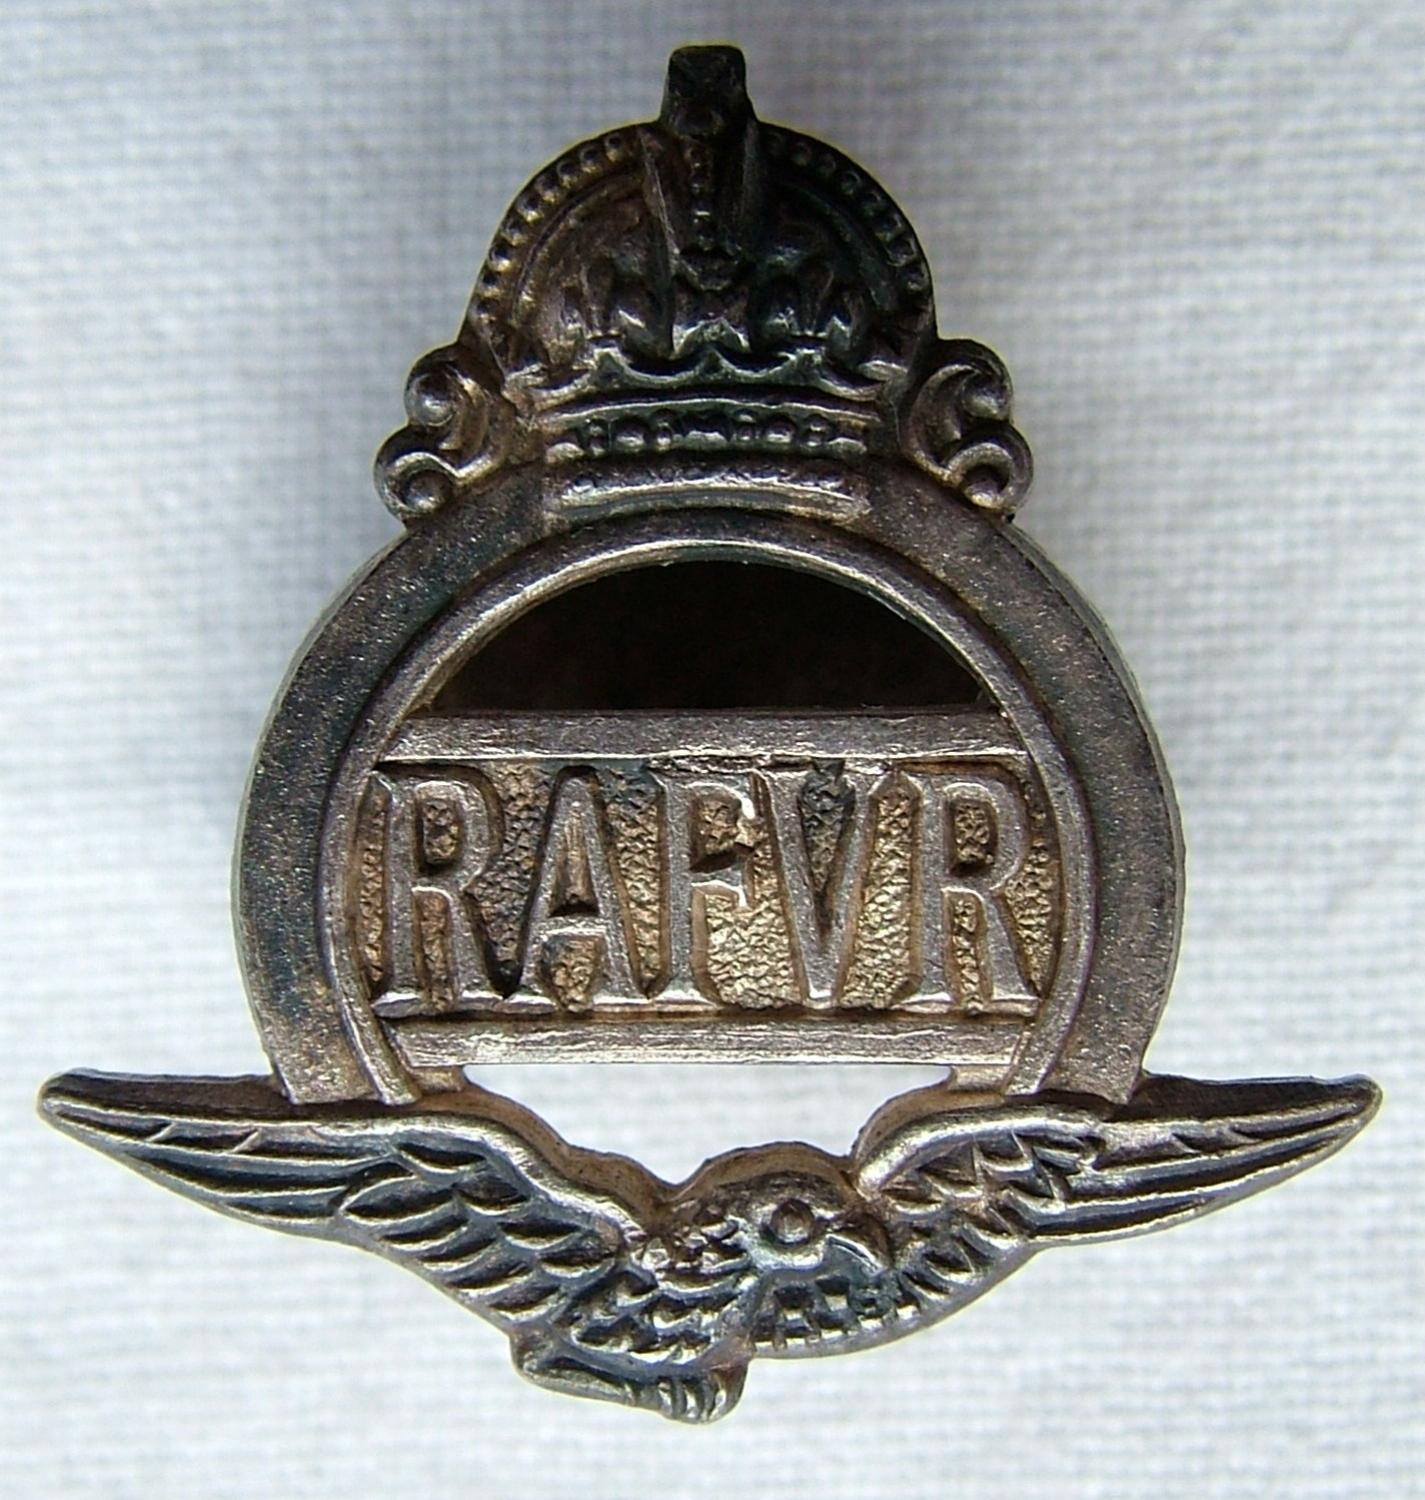 RAFVR Lapel Badge